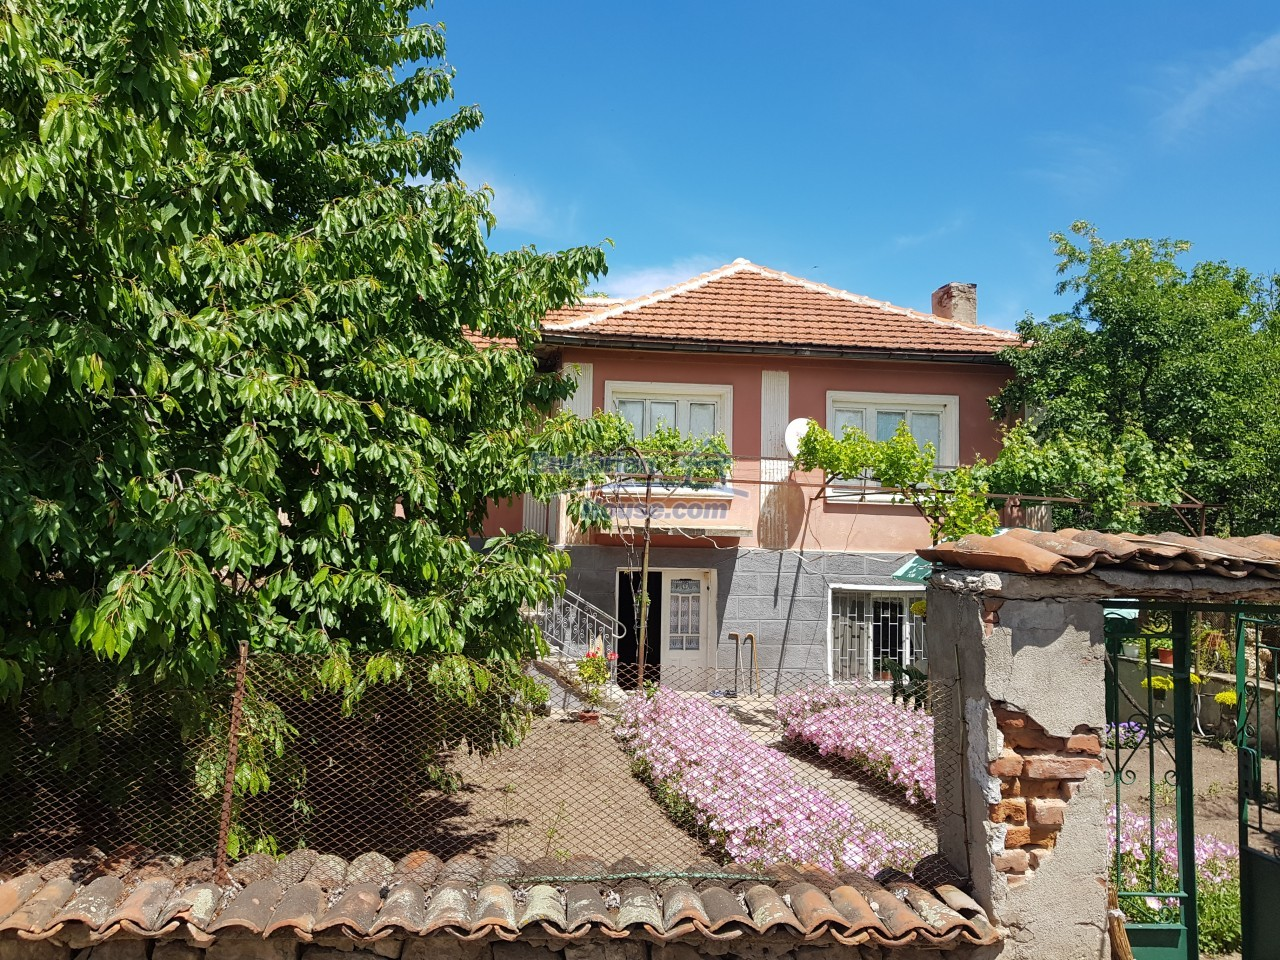 12777:61 - Village home for sale in Stara Zagora region with big garden